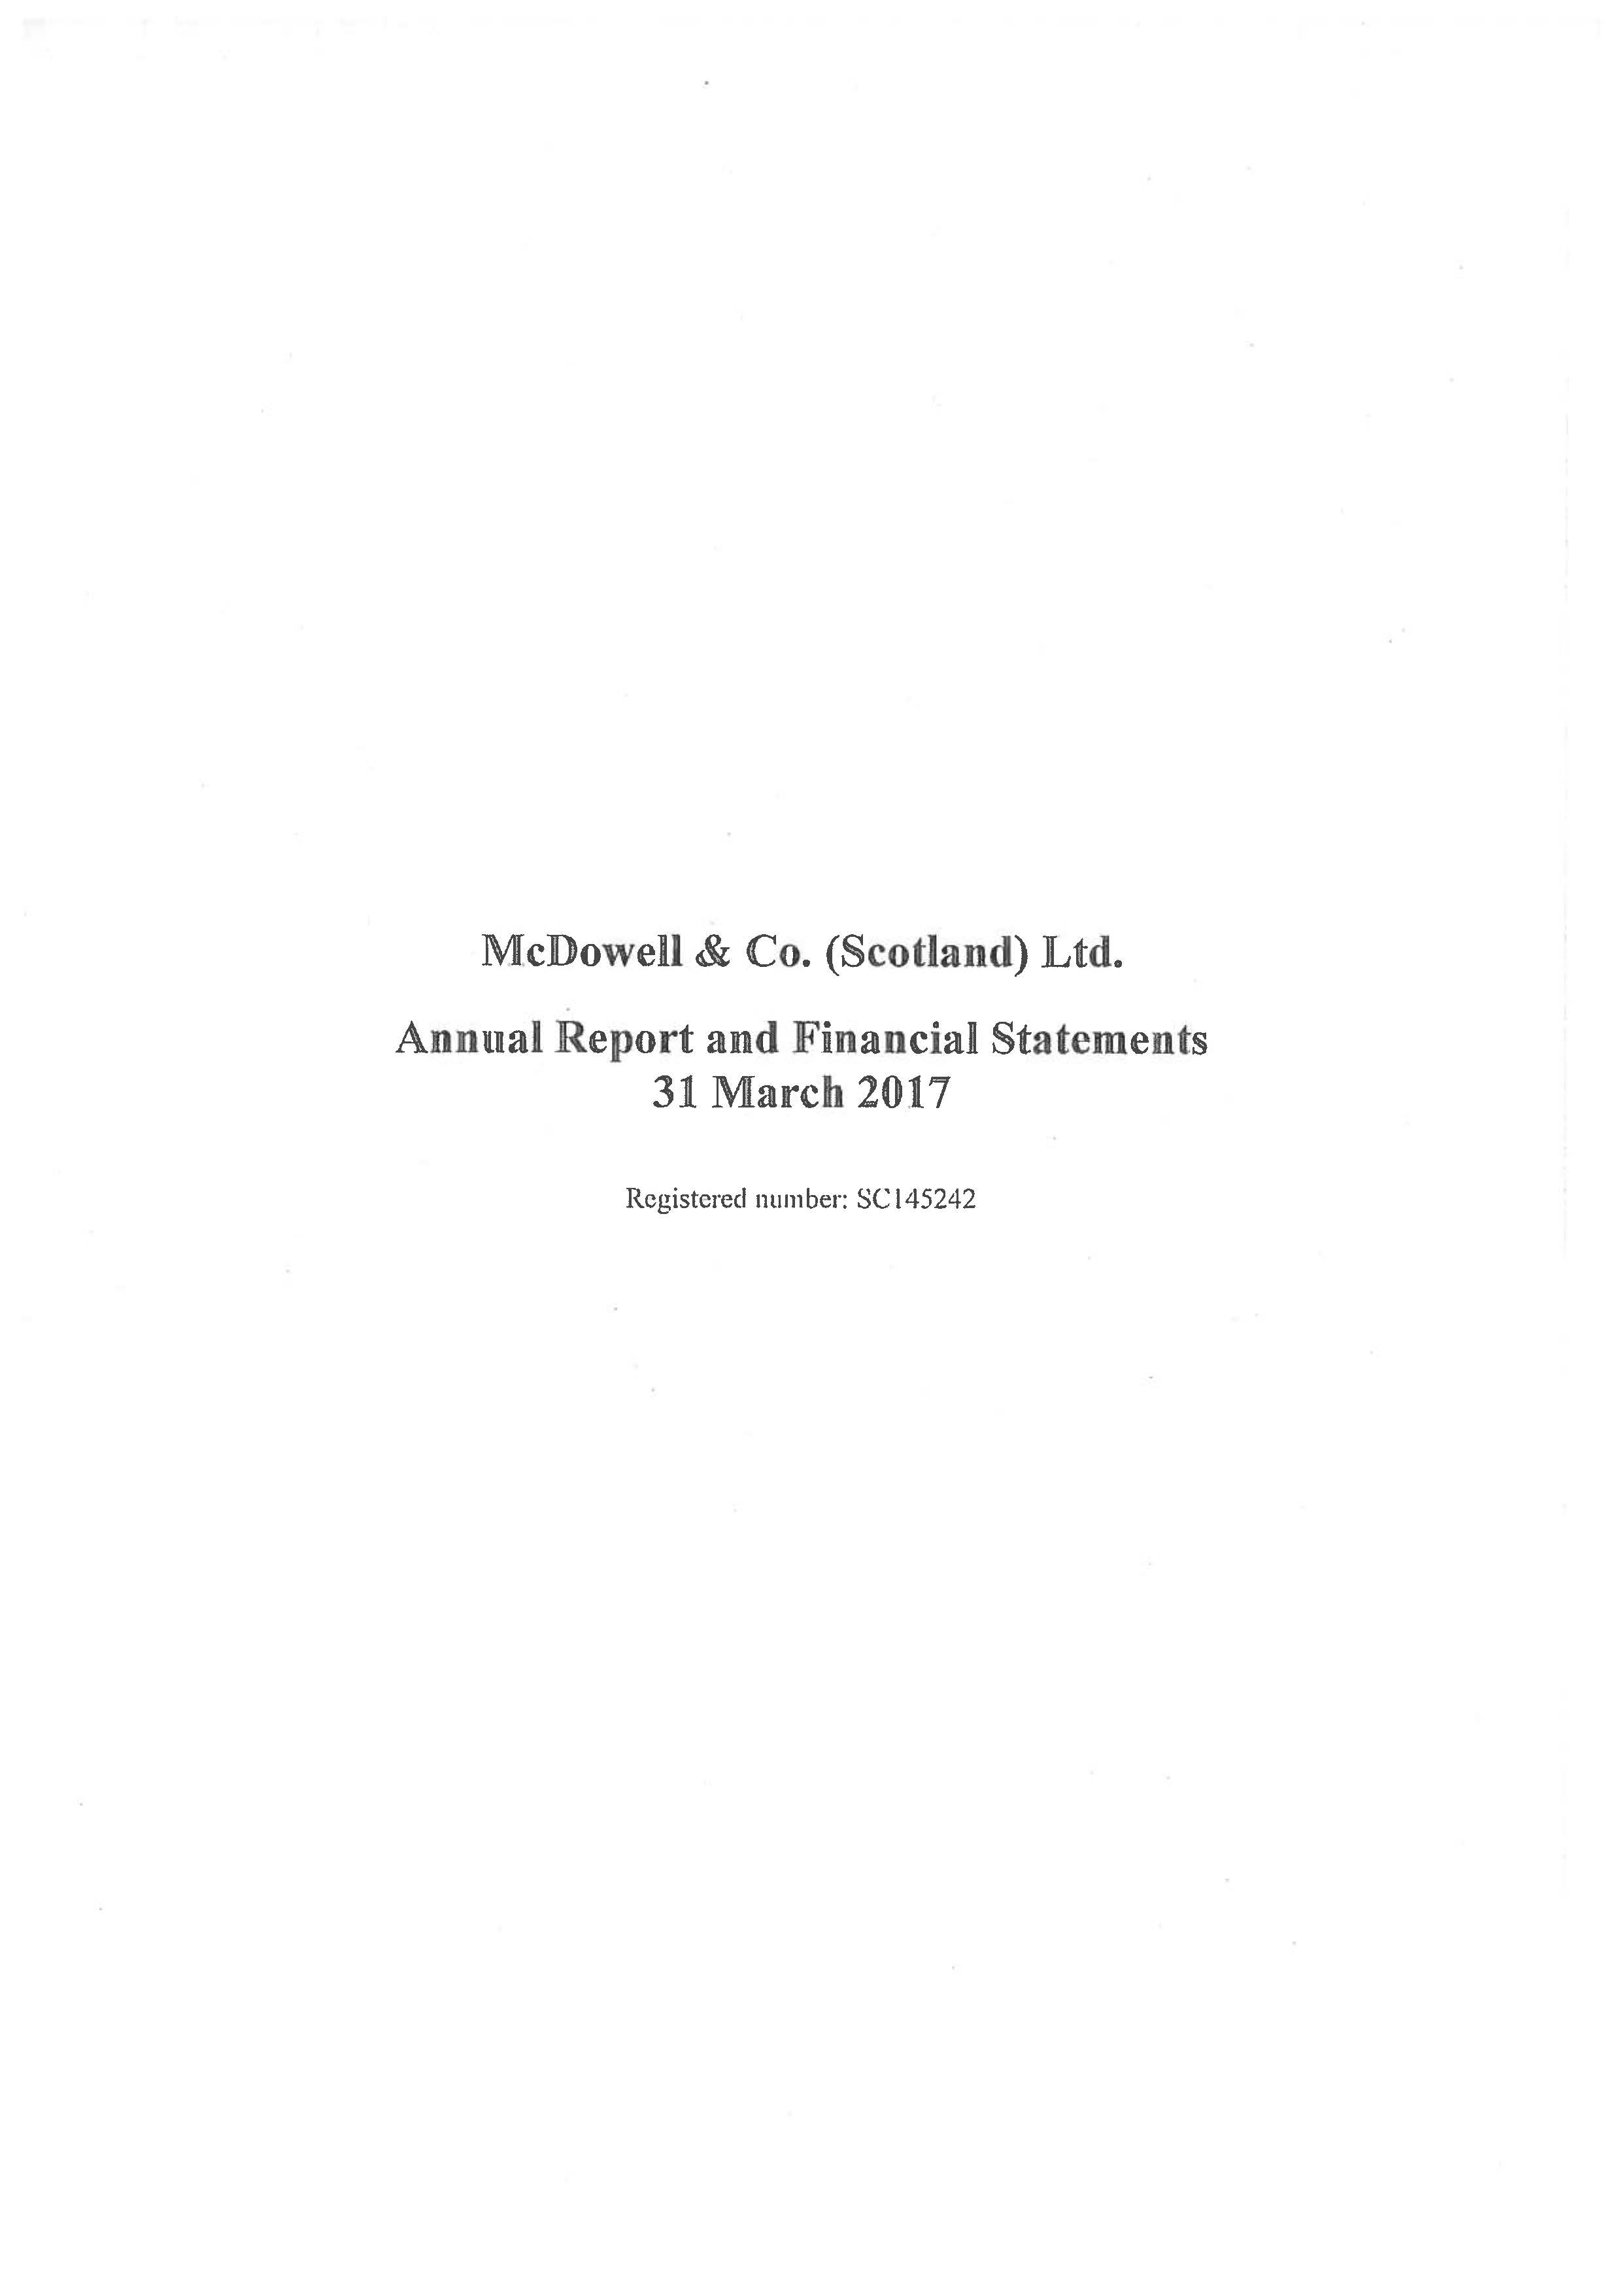 McDowell & Co (Scotland) Ltd Annual Report 2016-2017